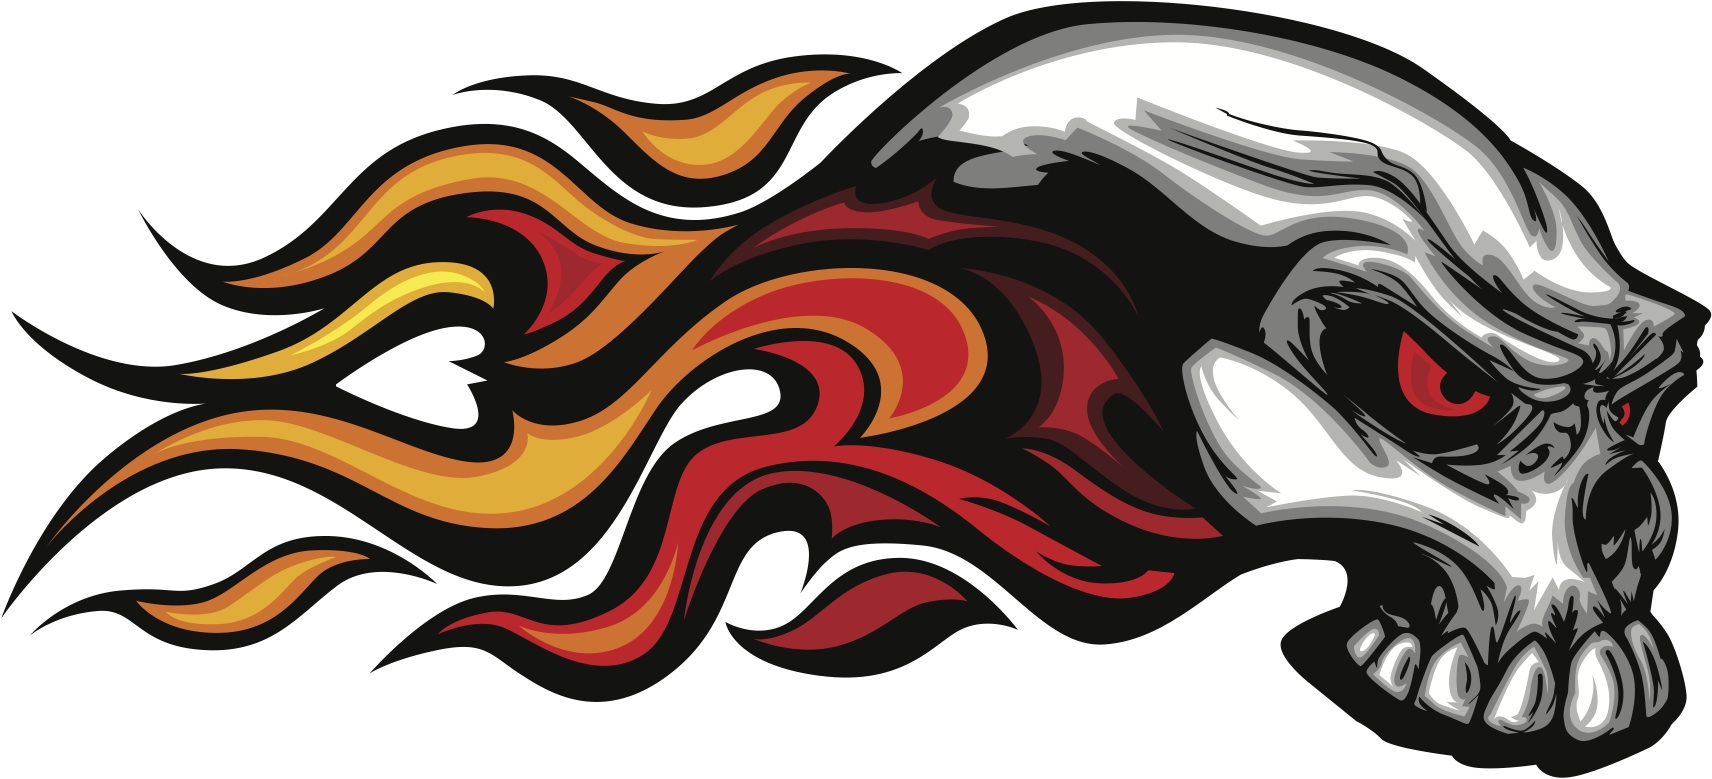 Skull with flames 2 car decal